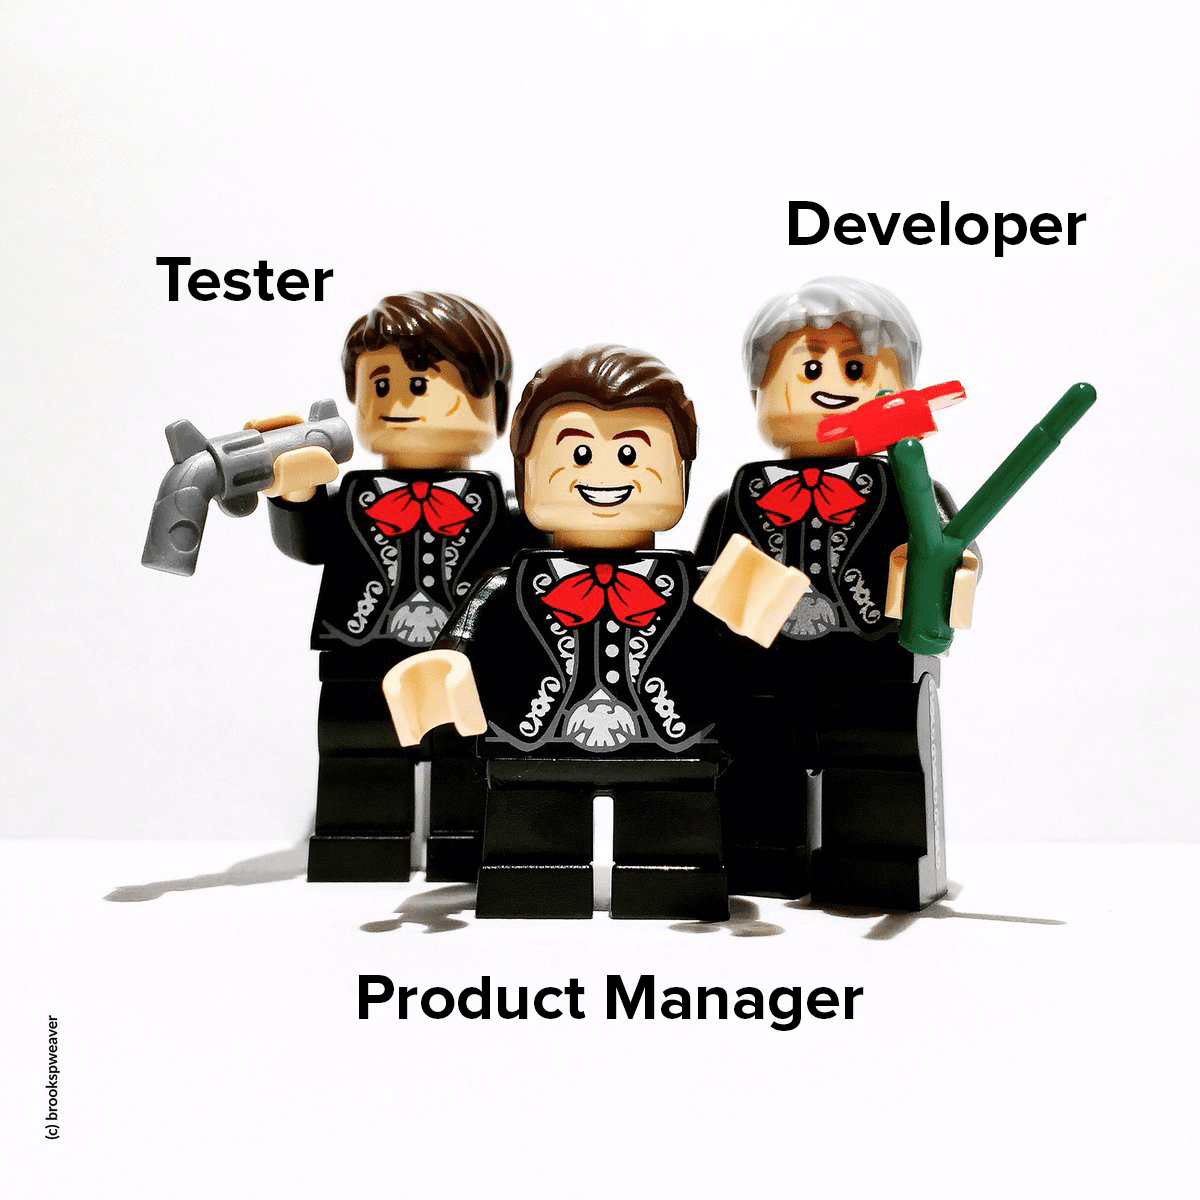 3 lego figures dressed as mariachis emulating the characters from the movie The Three Amigos, but one as tester, other as developer and other as product manager